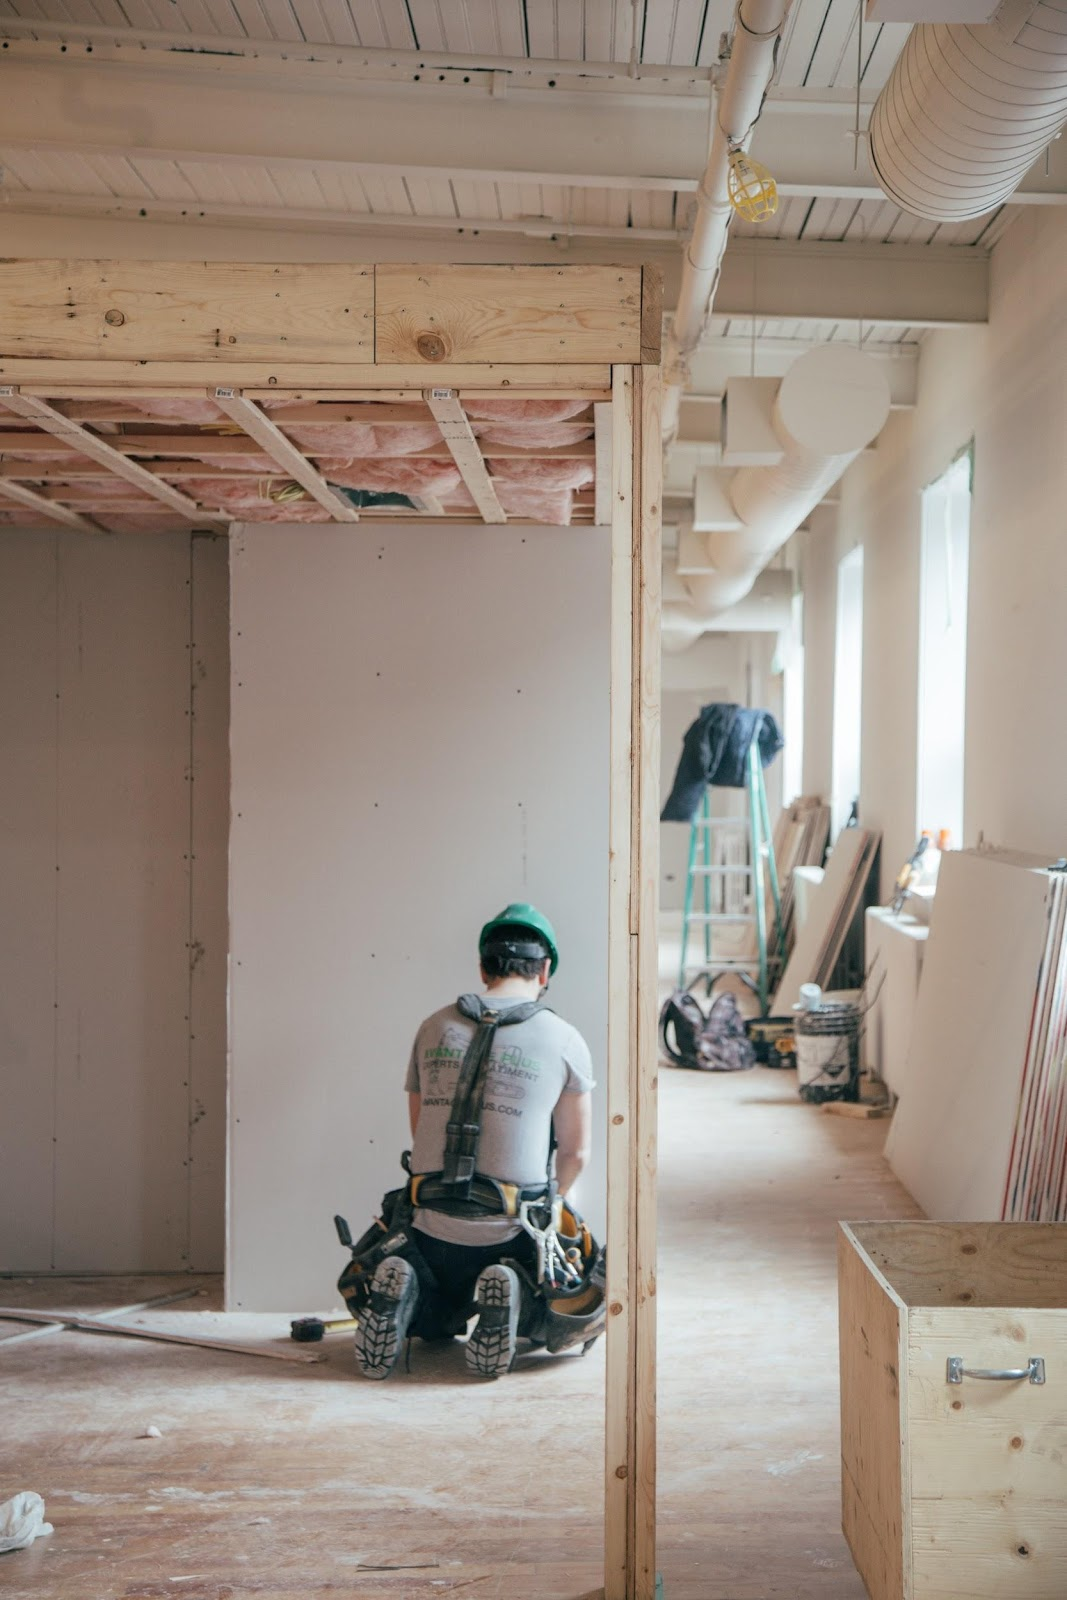 Renovations tips for untroubled time